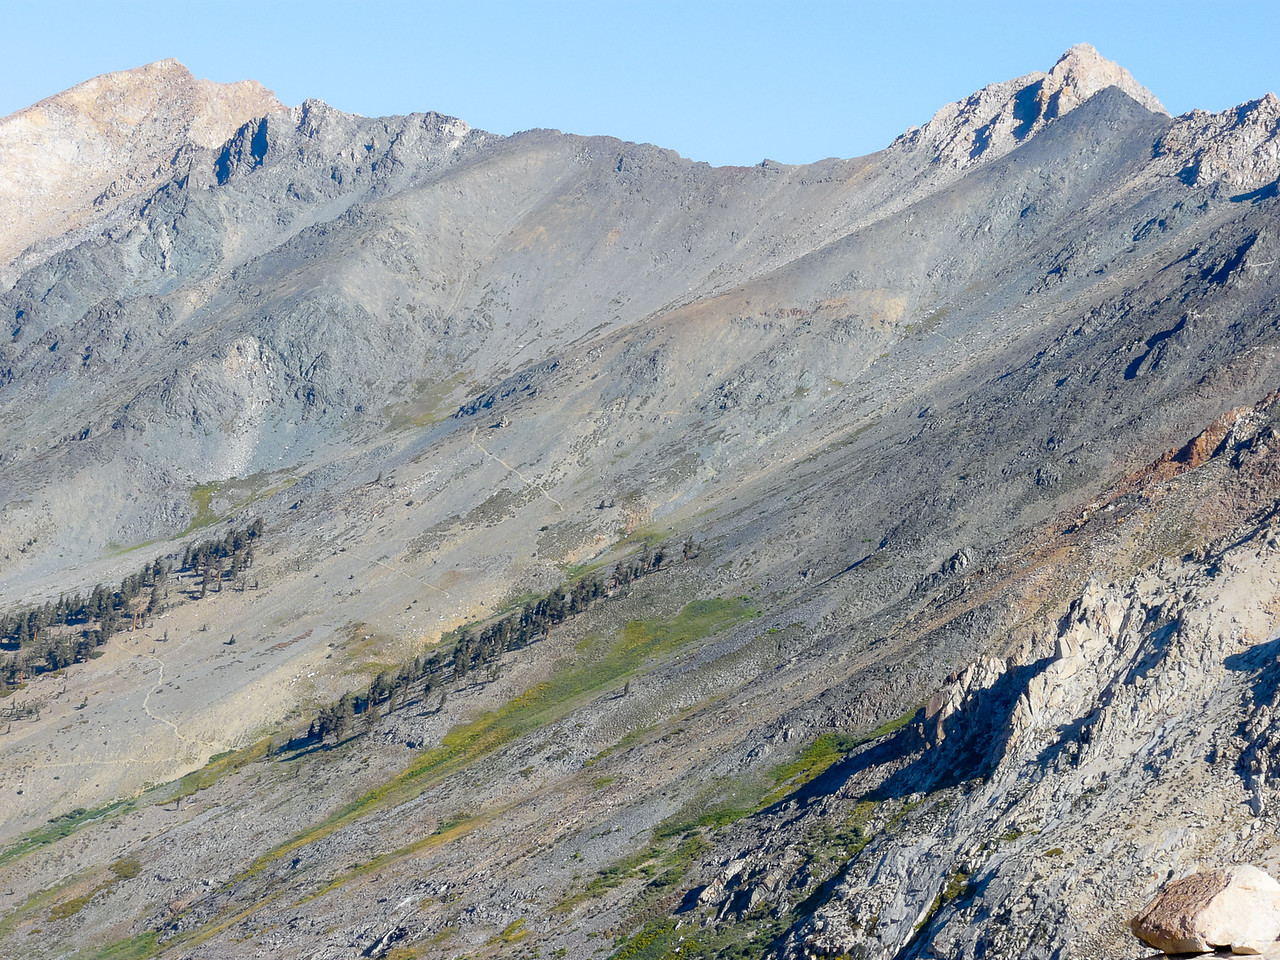 Looking north and up from the Columbine Lake area: Black Rock Pass and the trail to it.